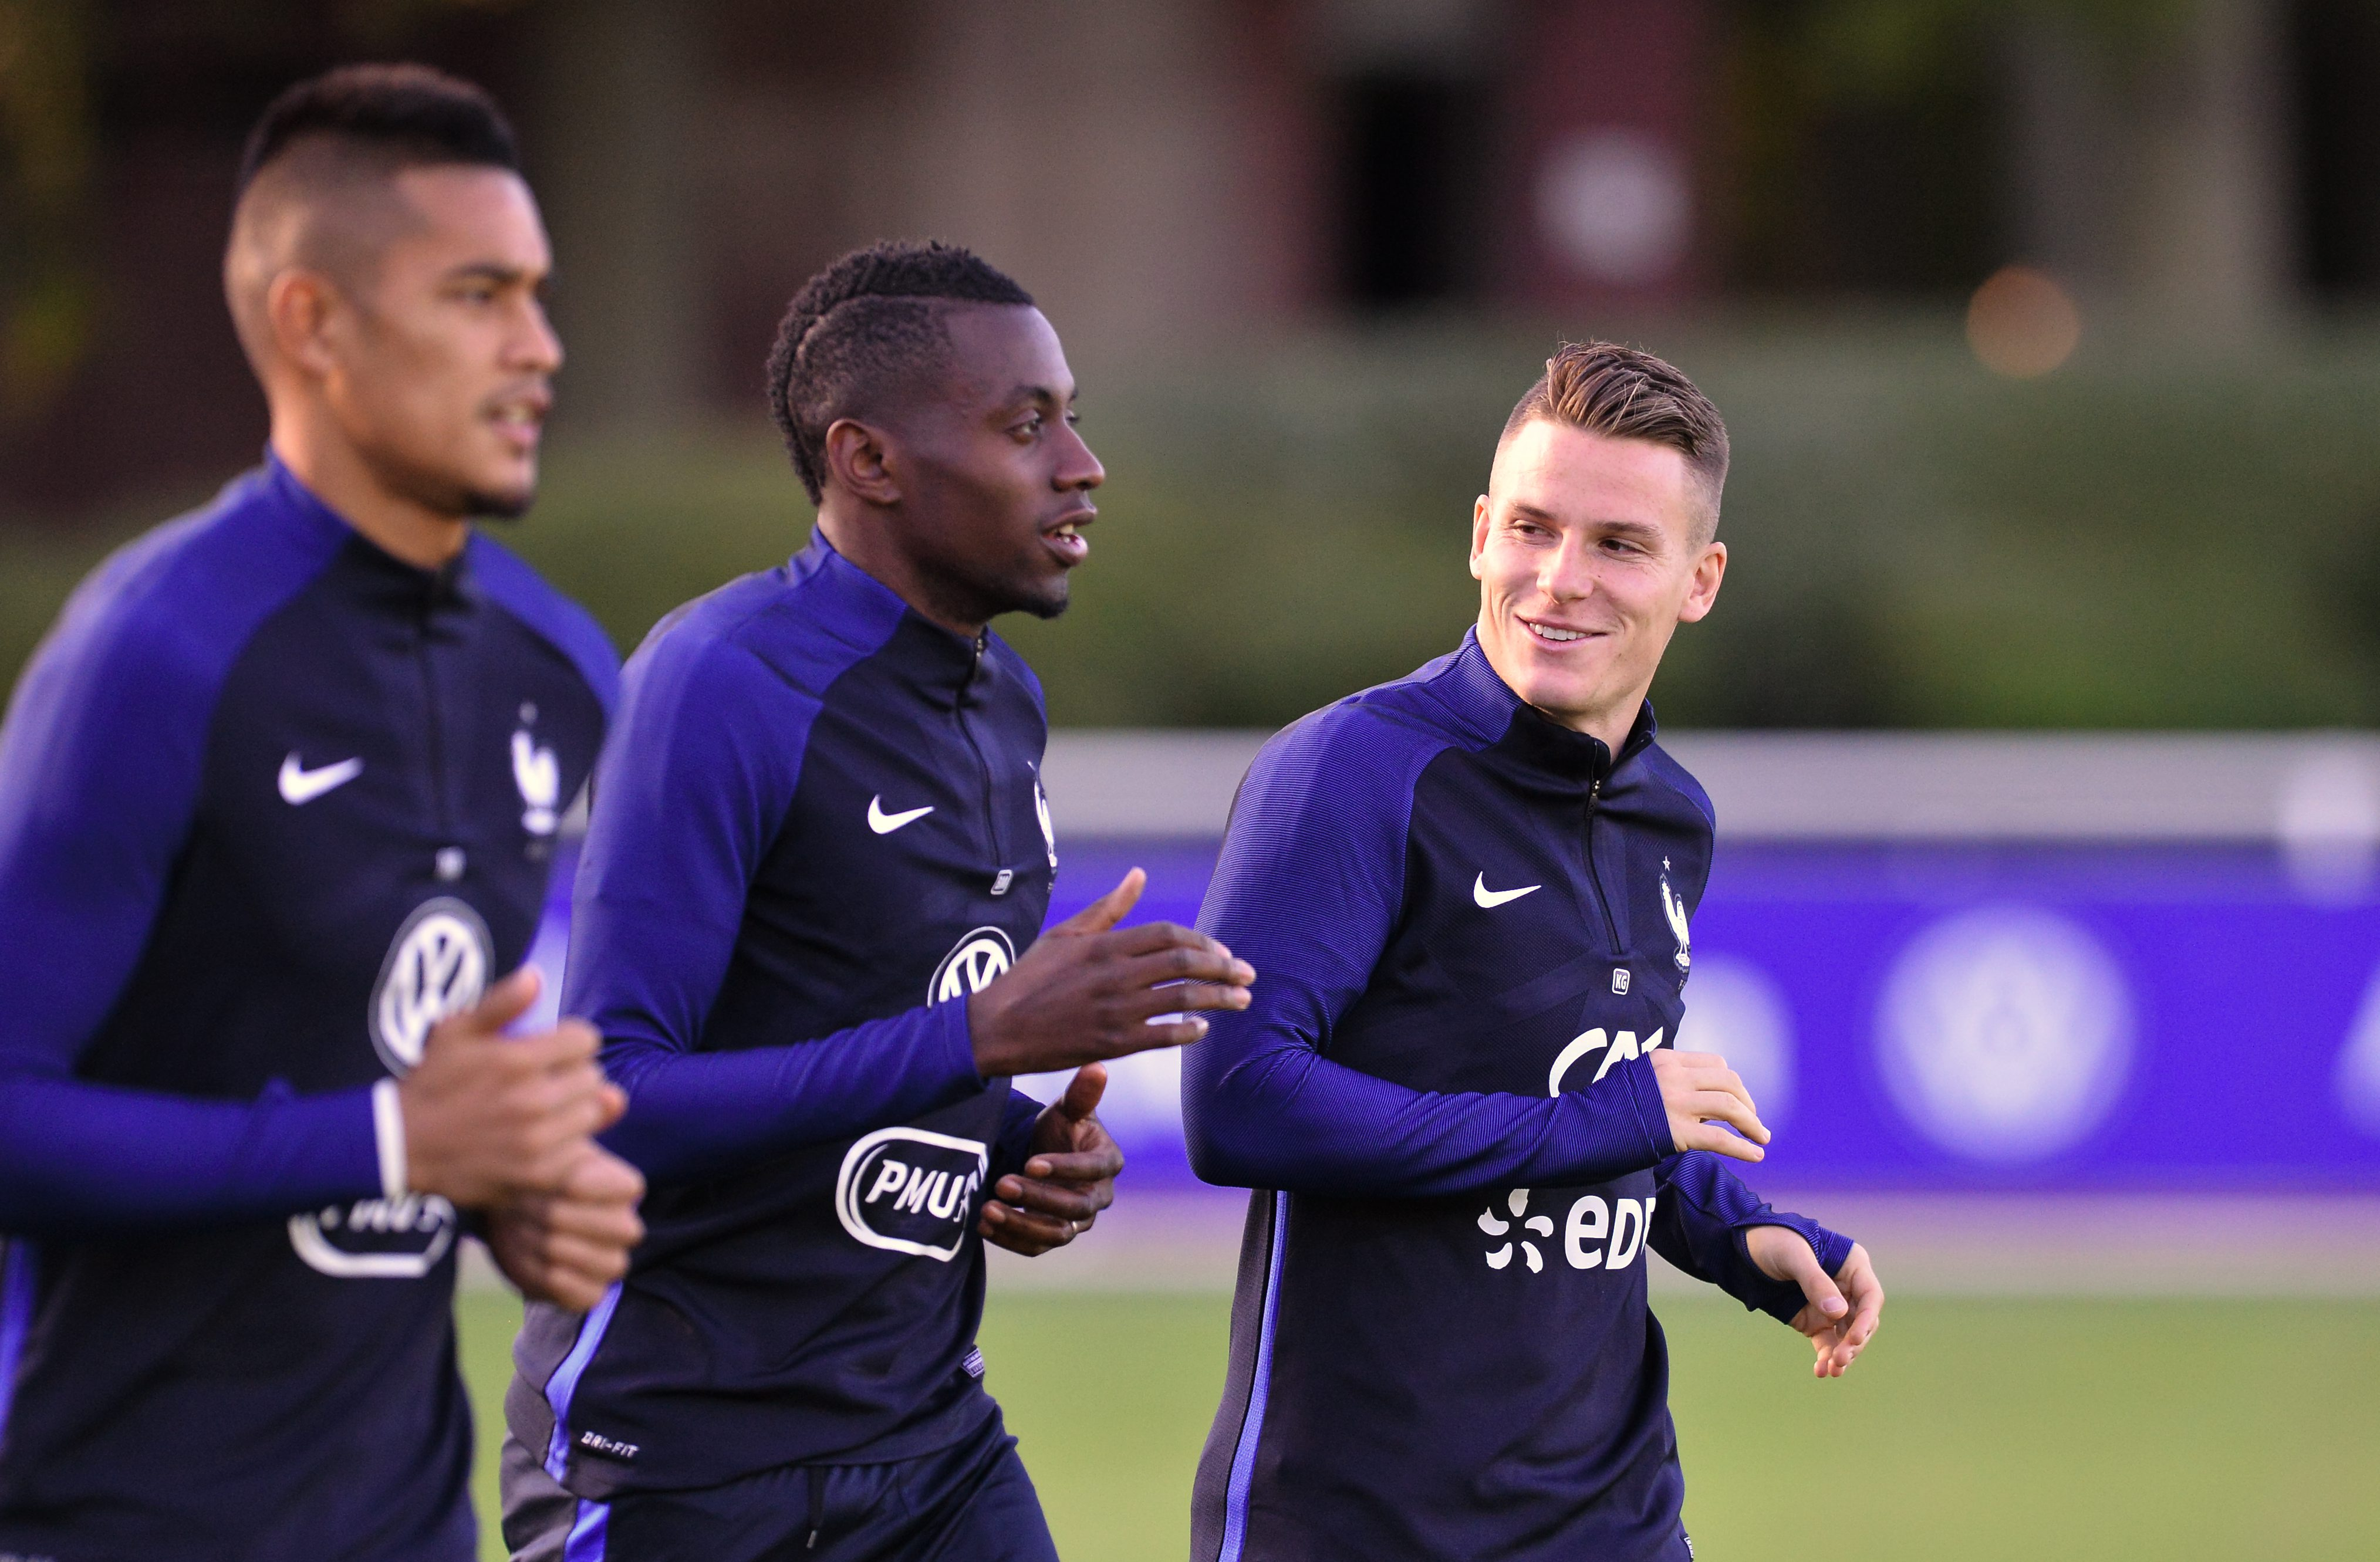 Football - Equipe de France - La France dans un probable 4-2-3-1 face à la Bulgarie